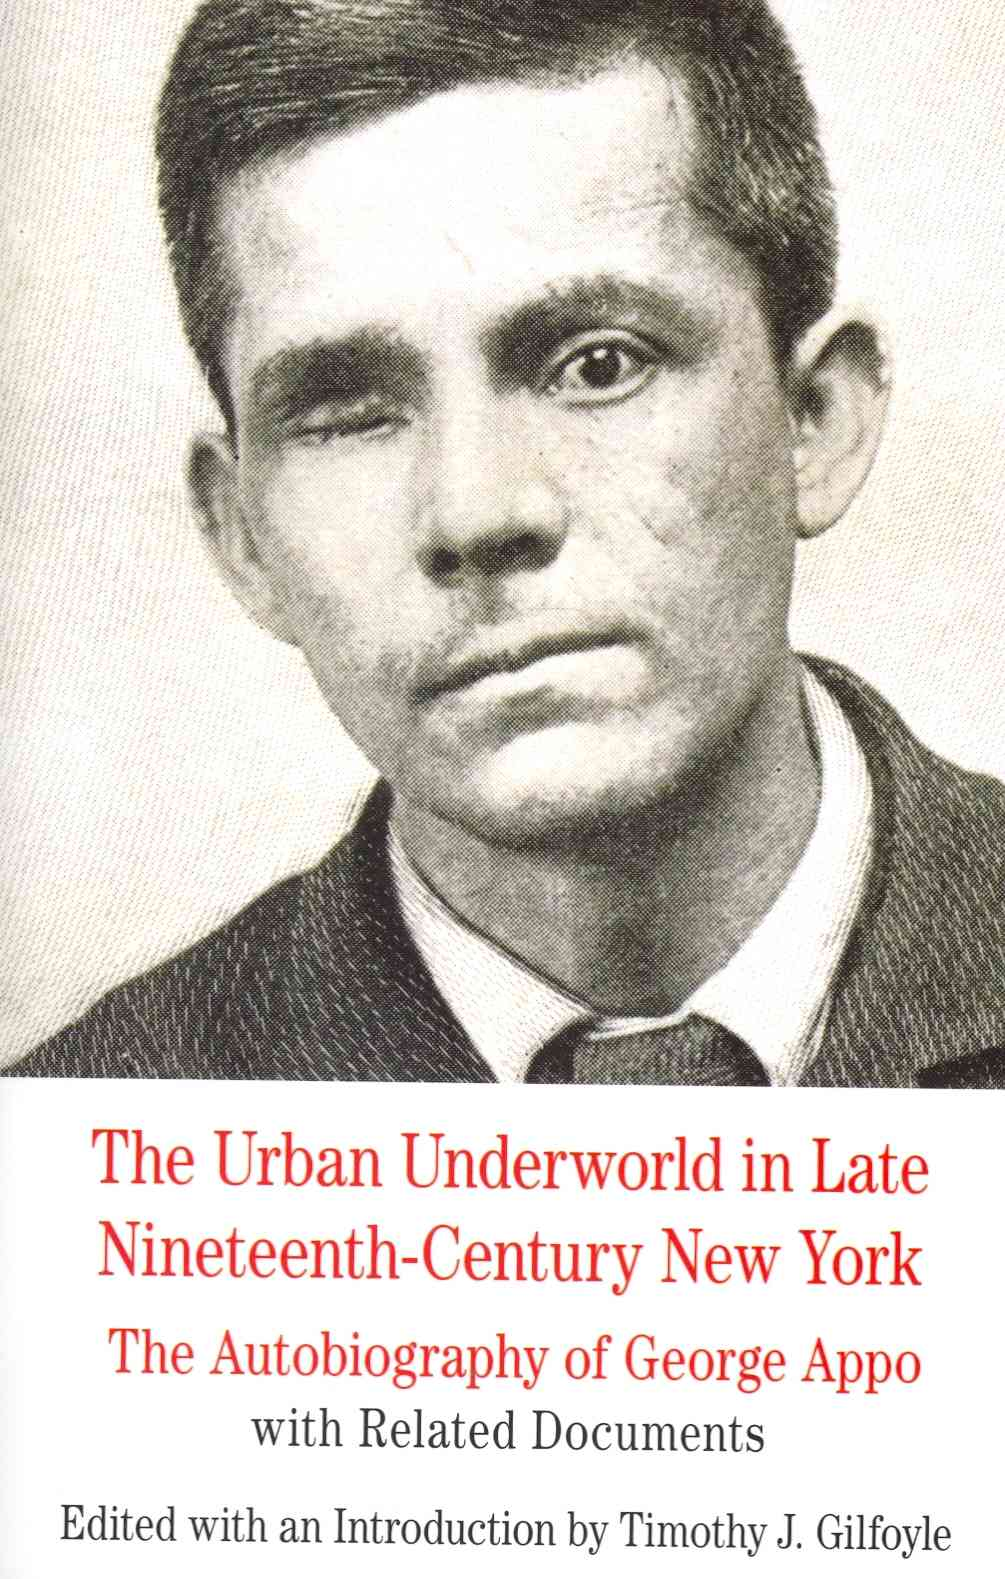 The Urban Underworld in Late Nineteenth-Century New York By Gilfoyle, Timothy